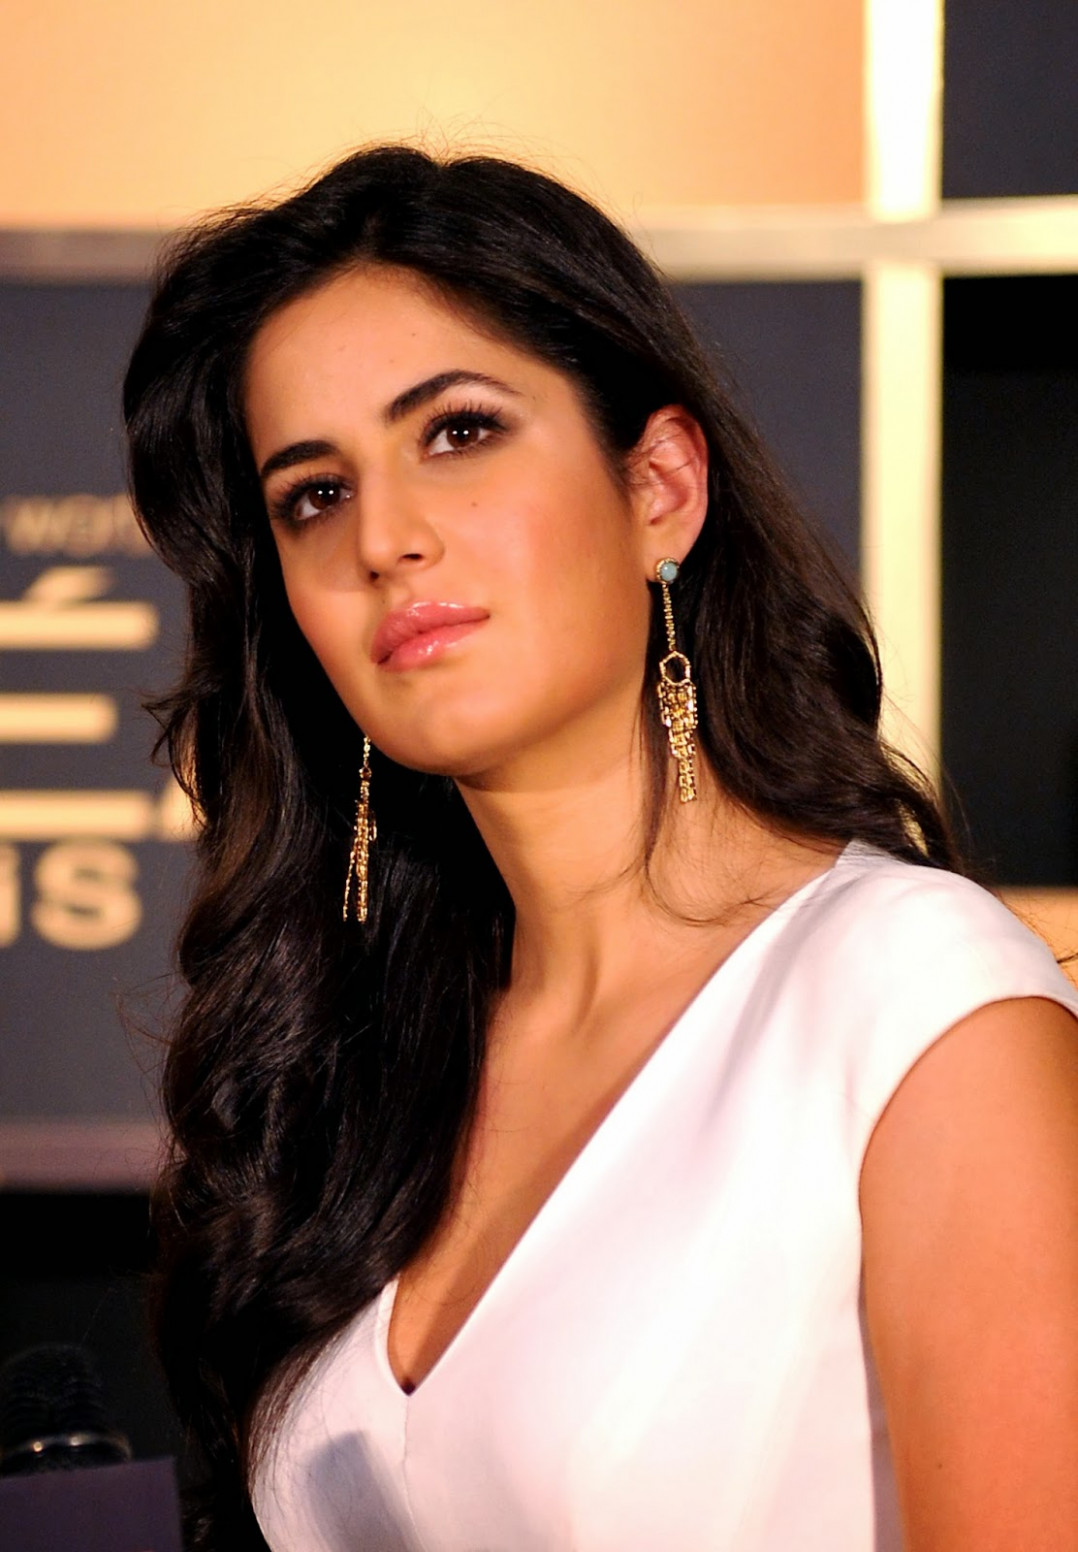 1000+ images about Katrina kaif on Pinterest | Katrina ...